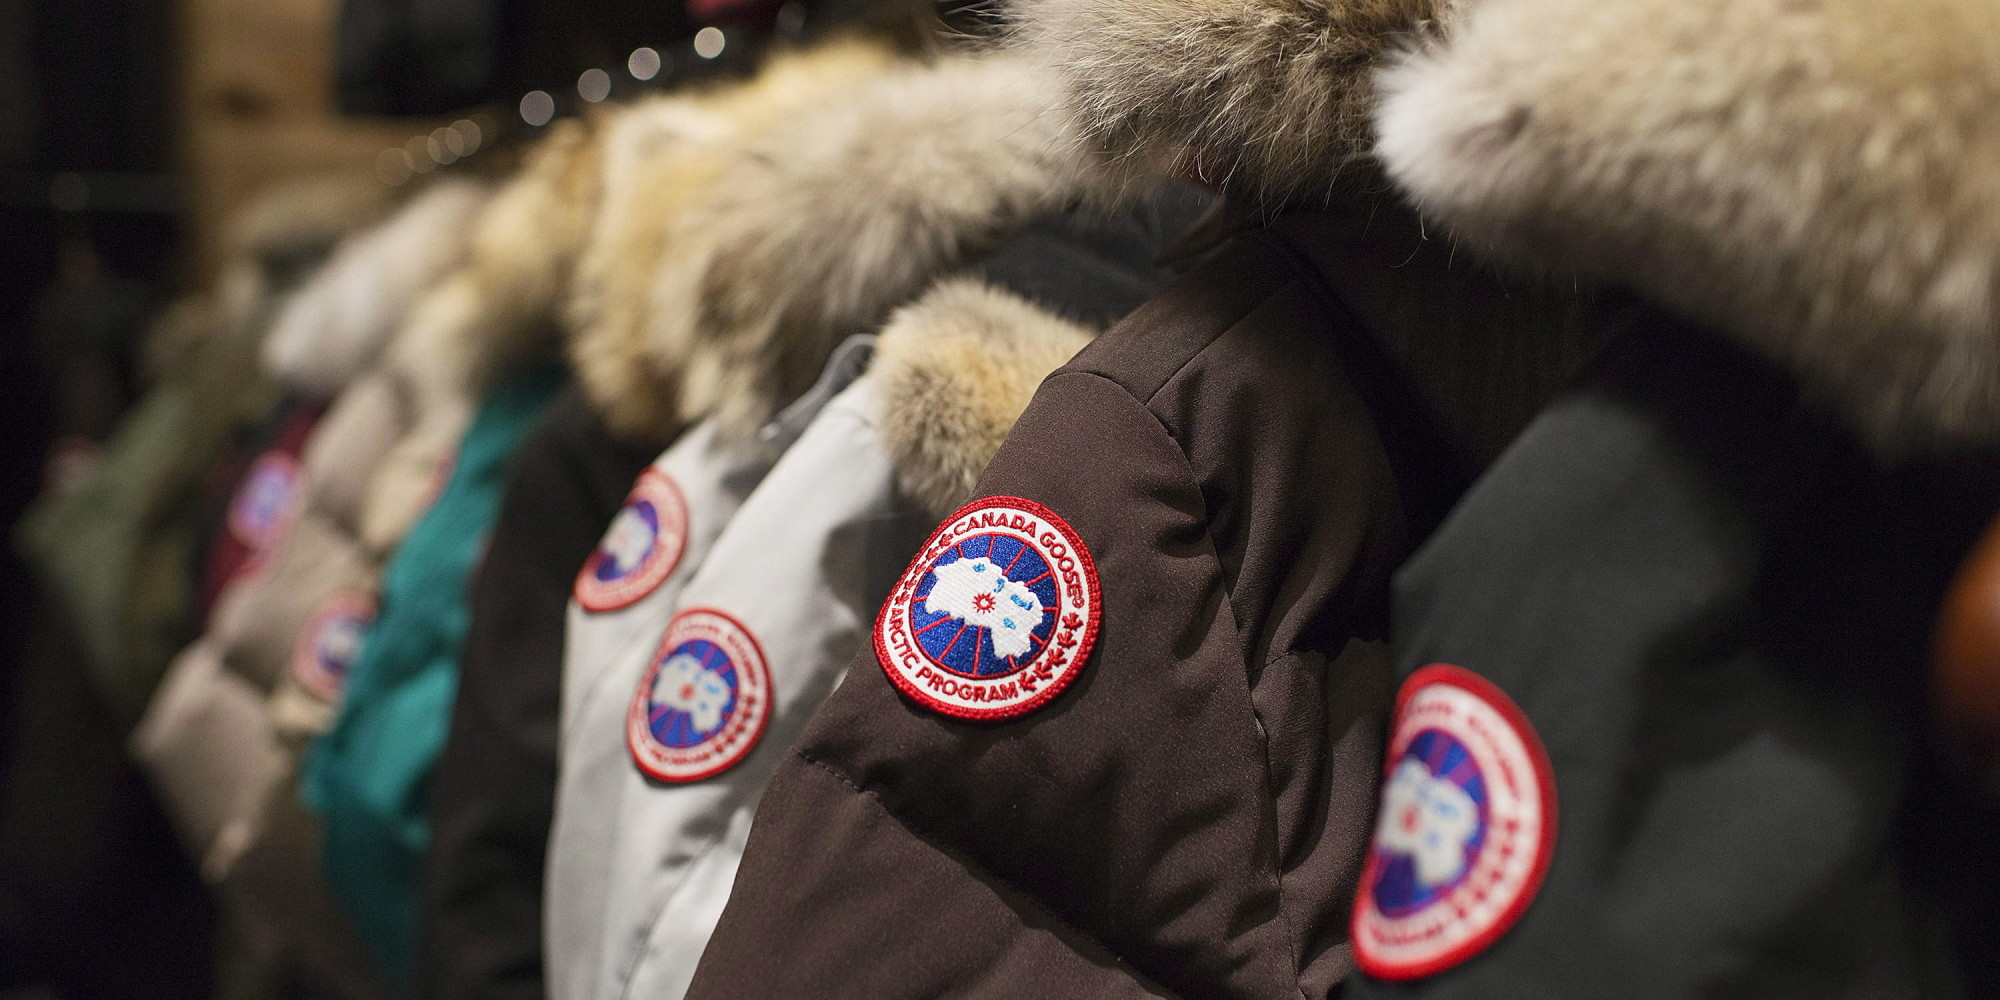 Canada Goose womens outlet fake - Sears: Canada Goose Engaged In 'Bullying'